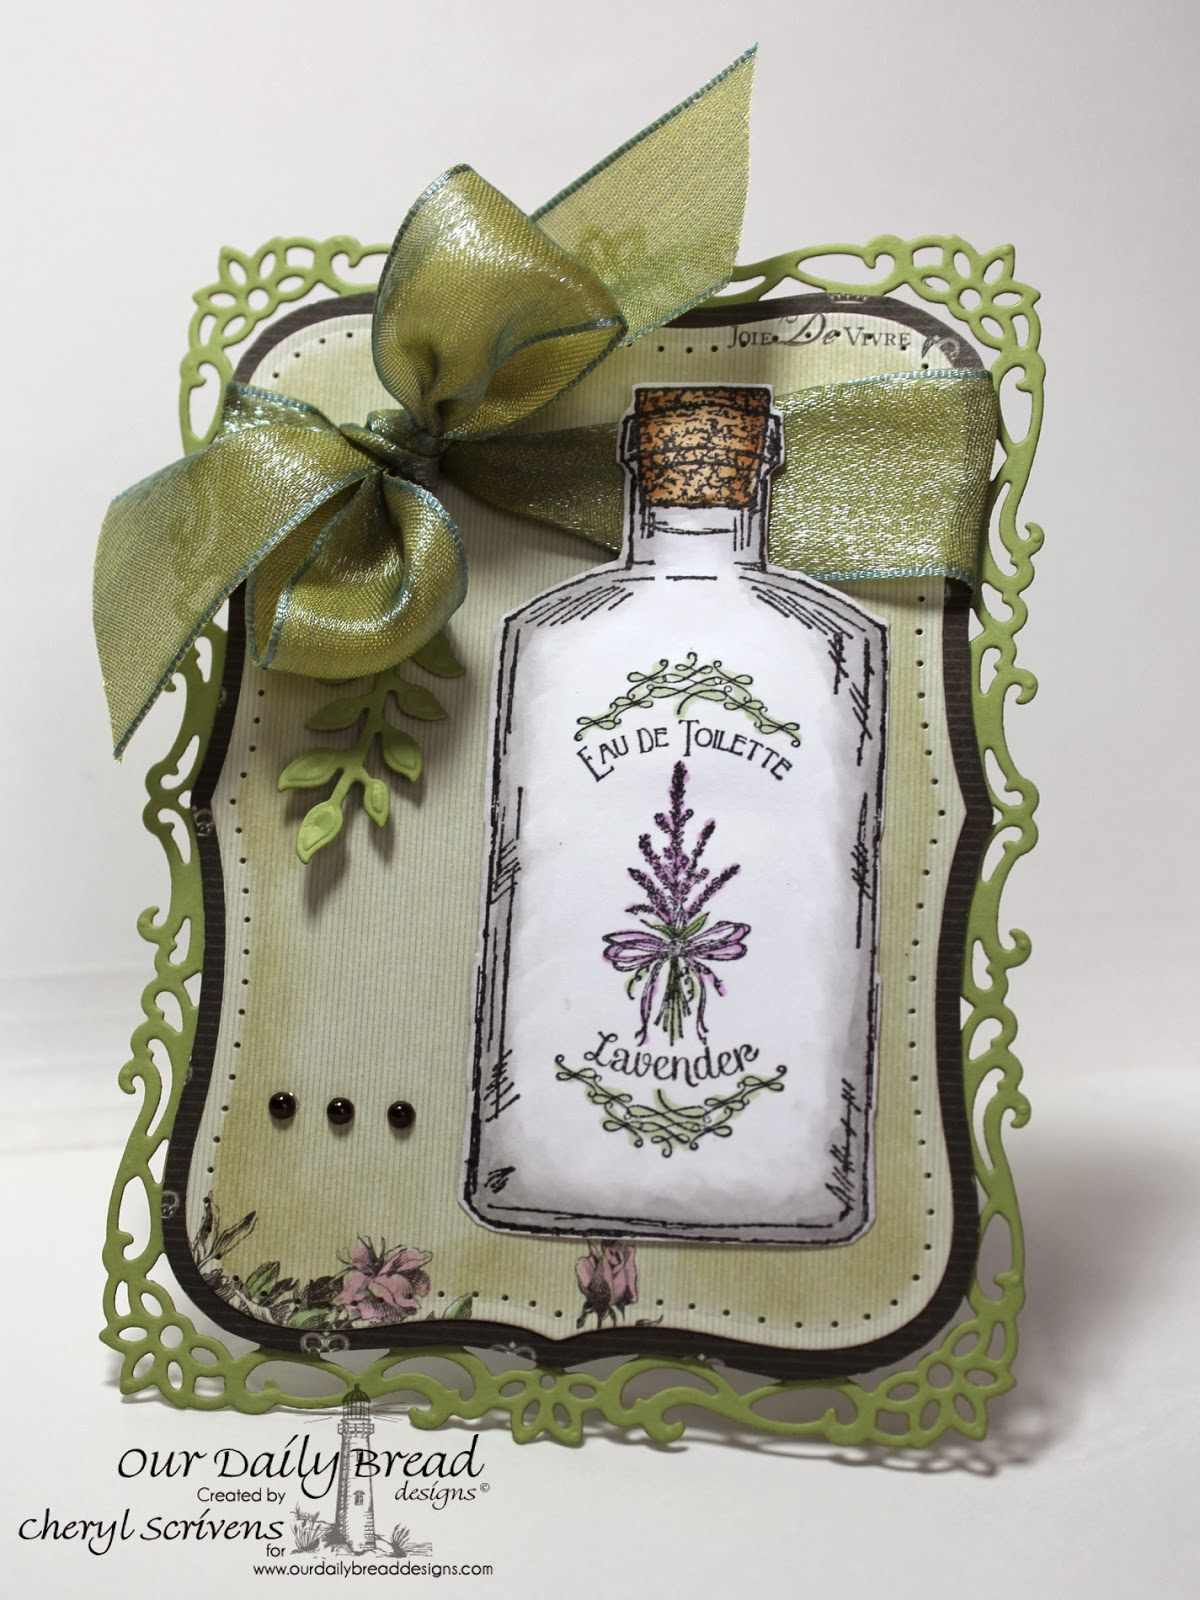 Our Daily Bread Designs, CherylQuilts, Apothecary Bottles, Lavender, ODBD Custom Apothecary Bottles Dies, ODBD Custom Fancy Foliage Dies